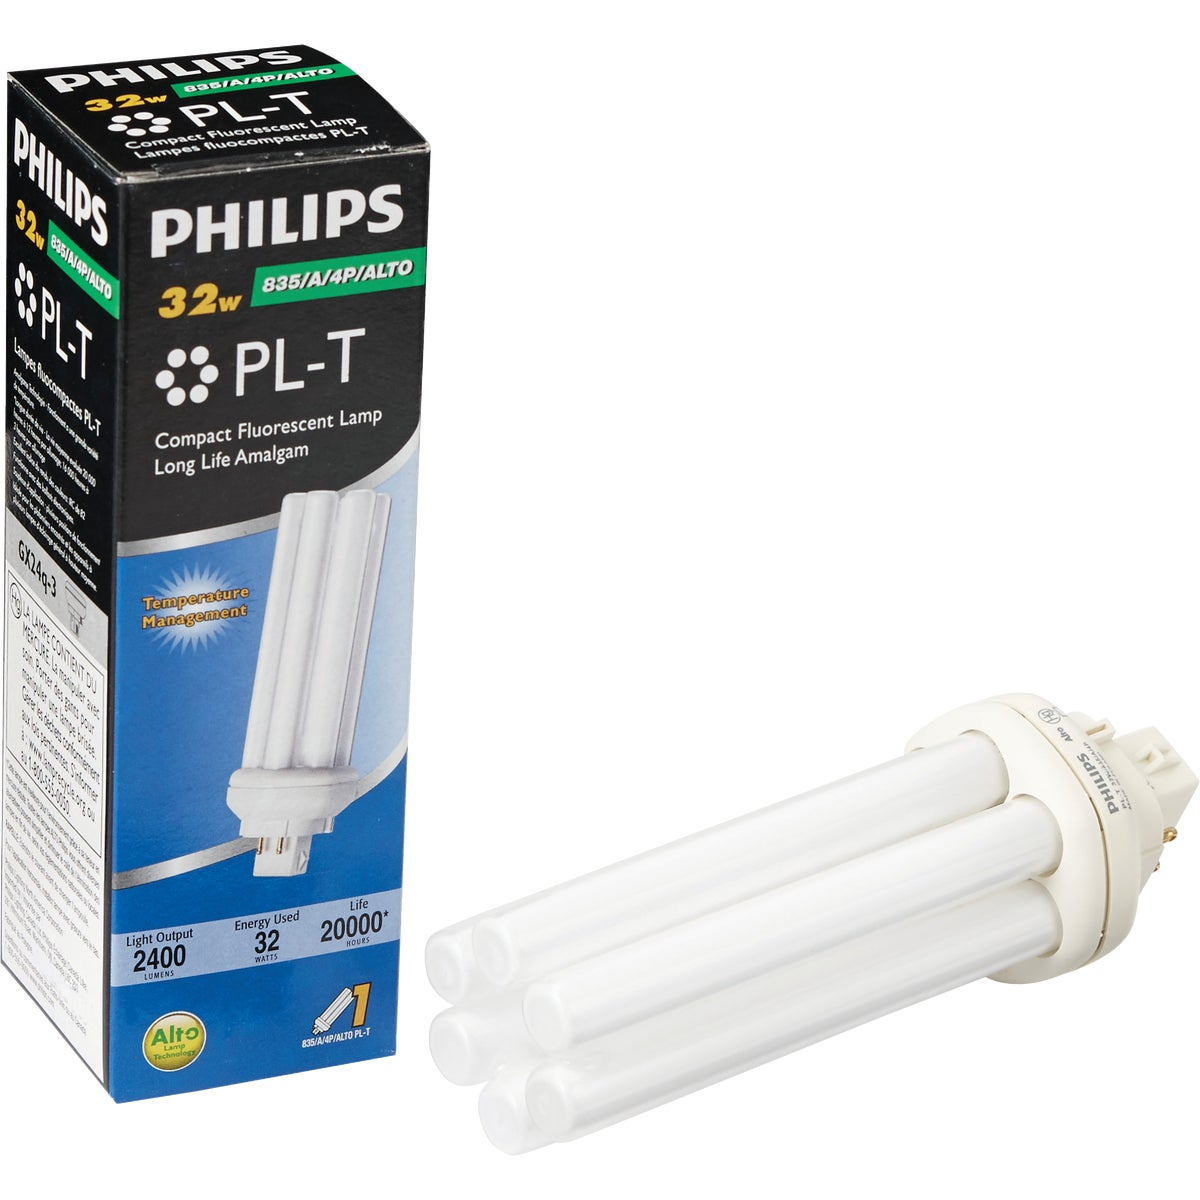 32W TRIP FLUOR TUBE - 97631 F32TBX835/A/ECO by G E Lighting